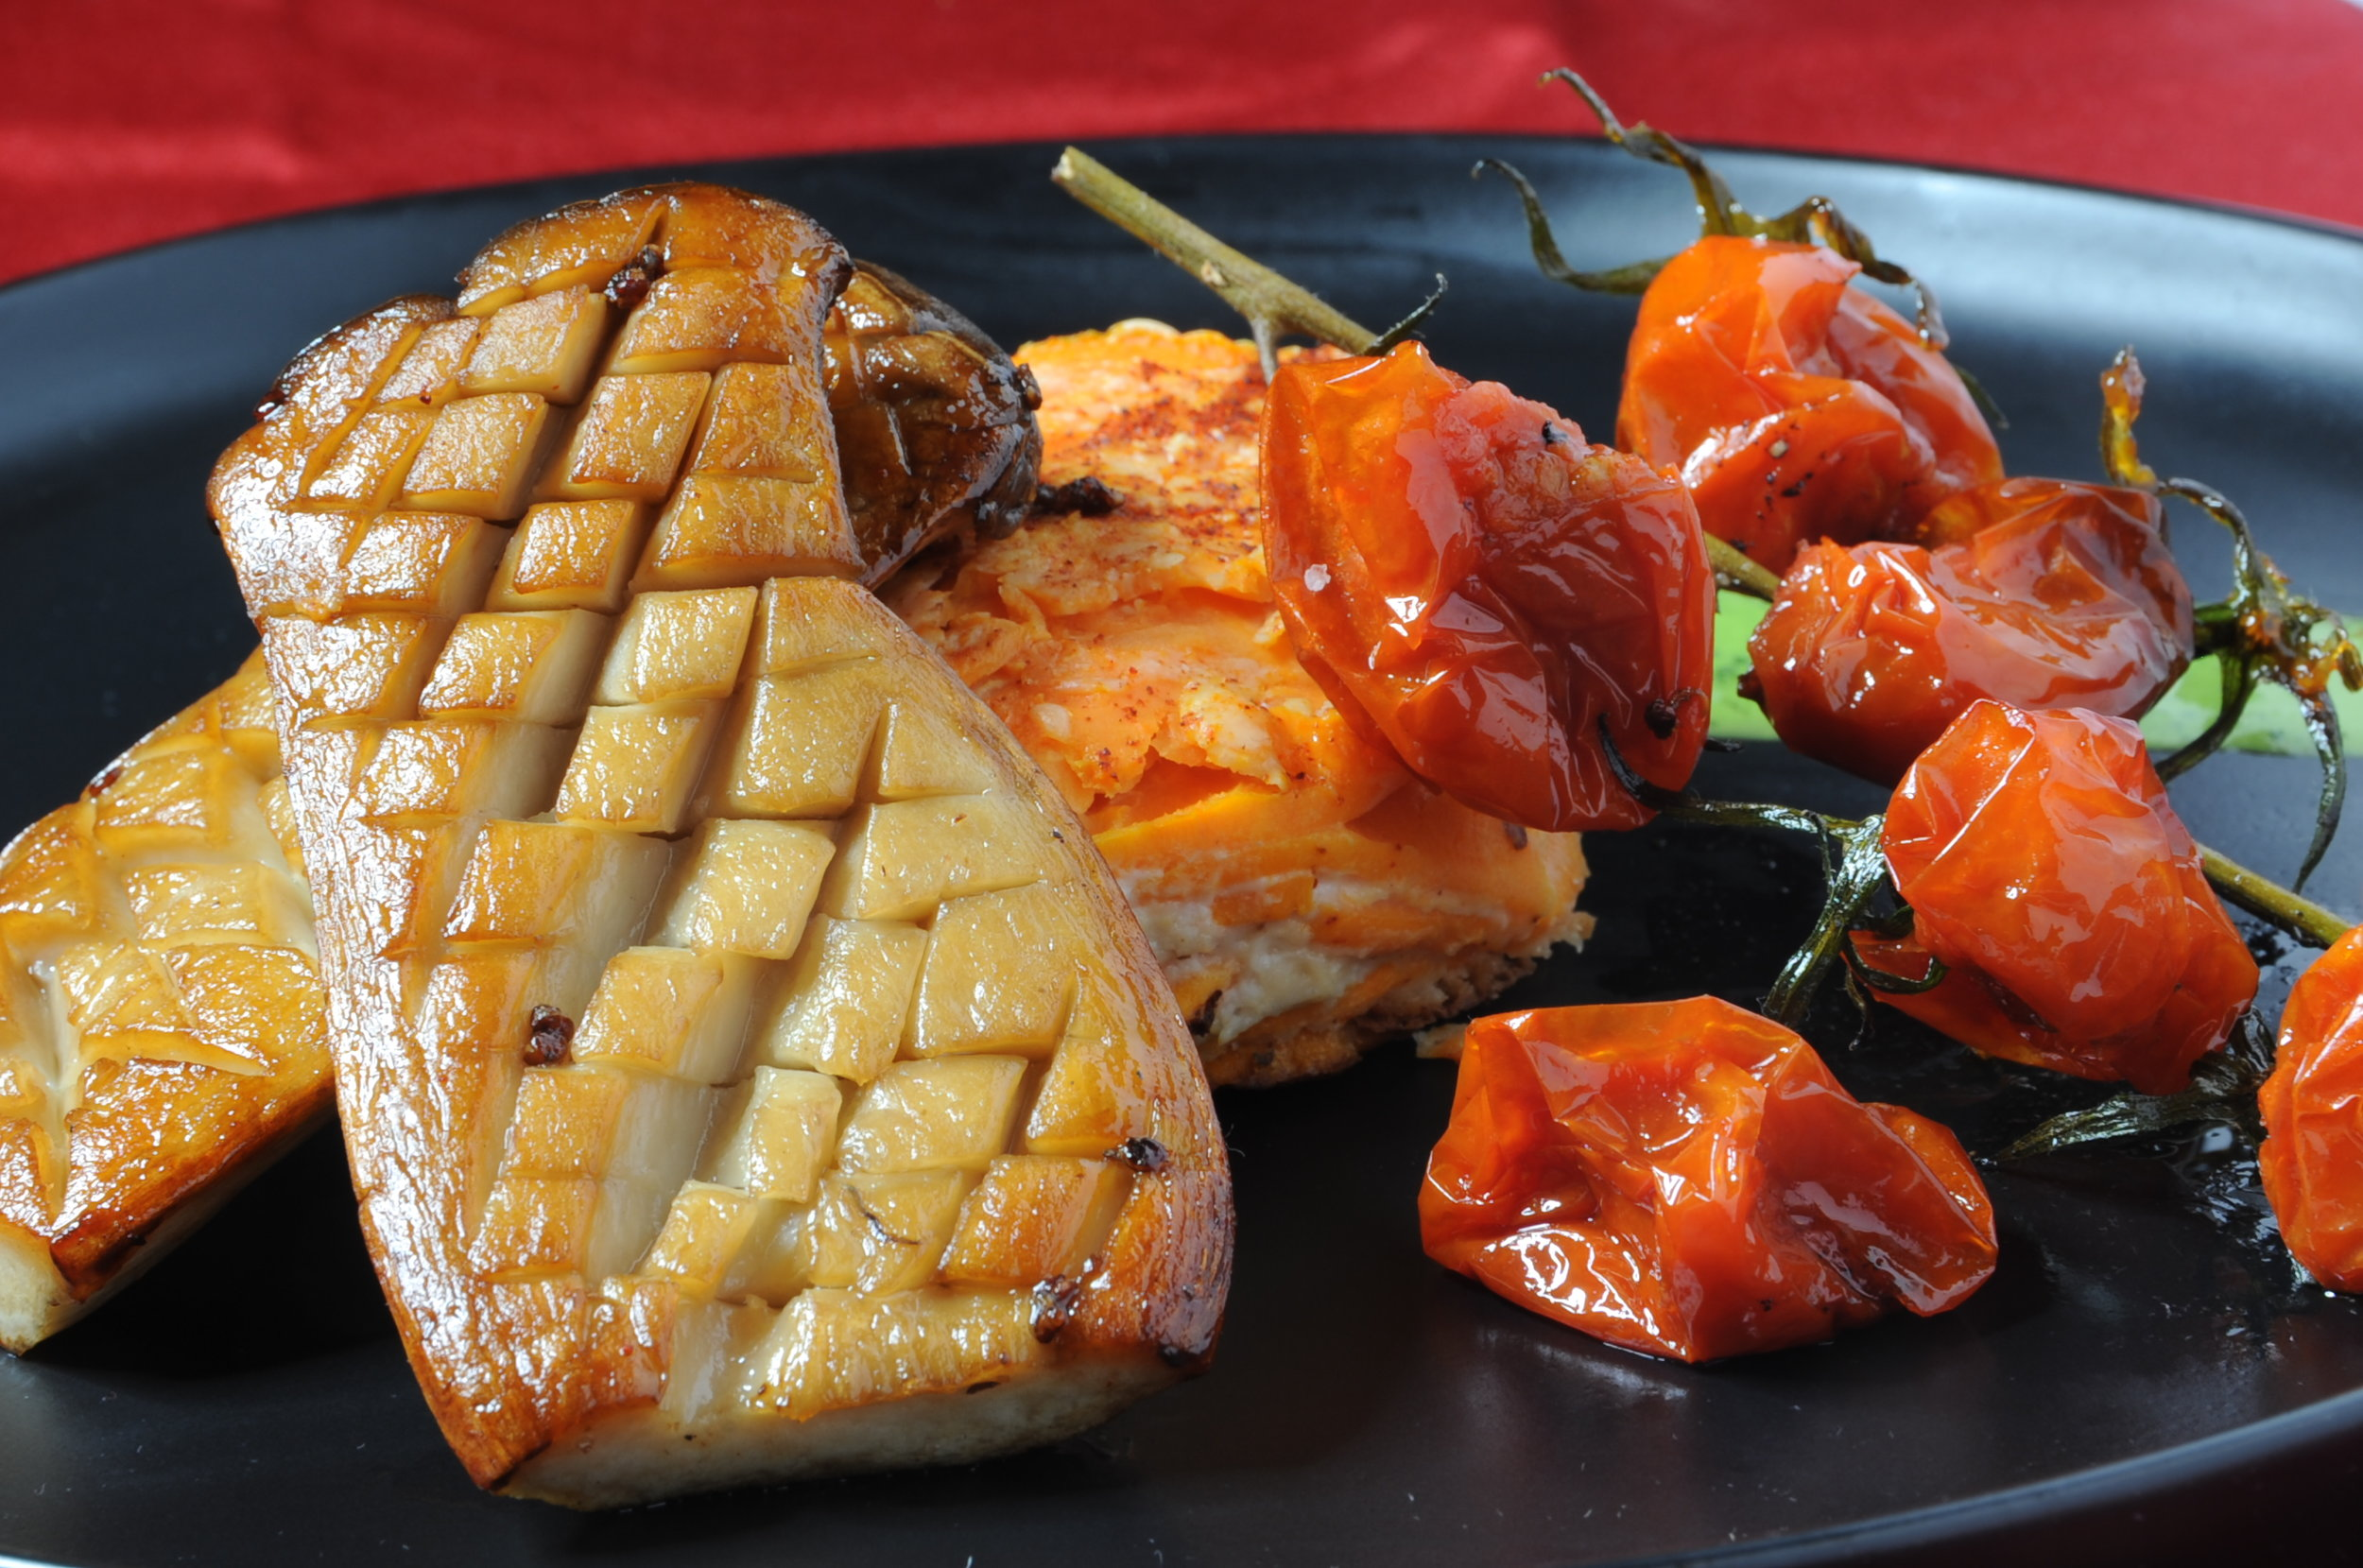 Seared Trumpet Mushroom with Sweet Potato Gratin and Roasted Tomatoes